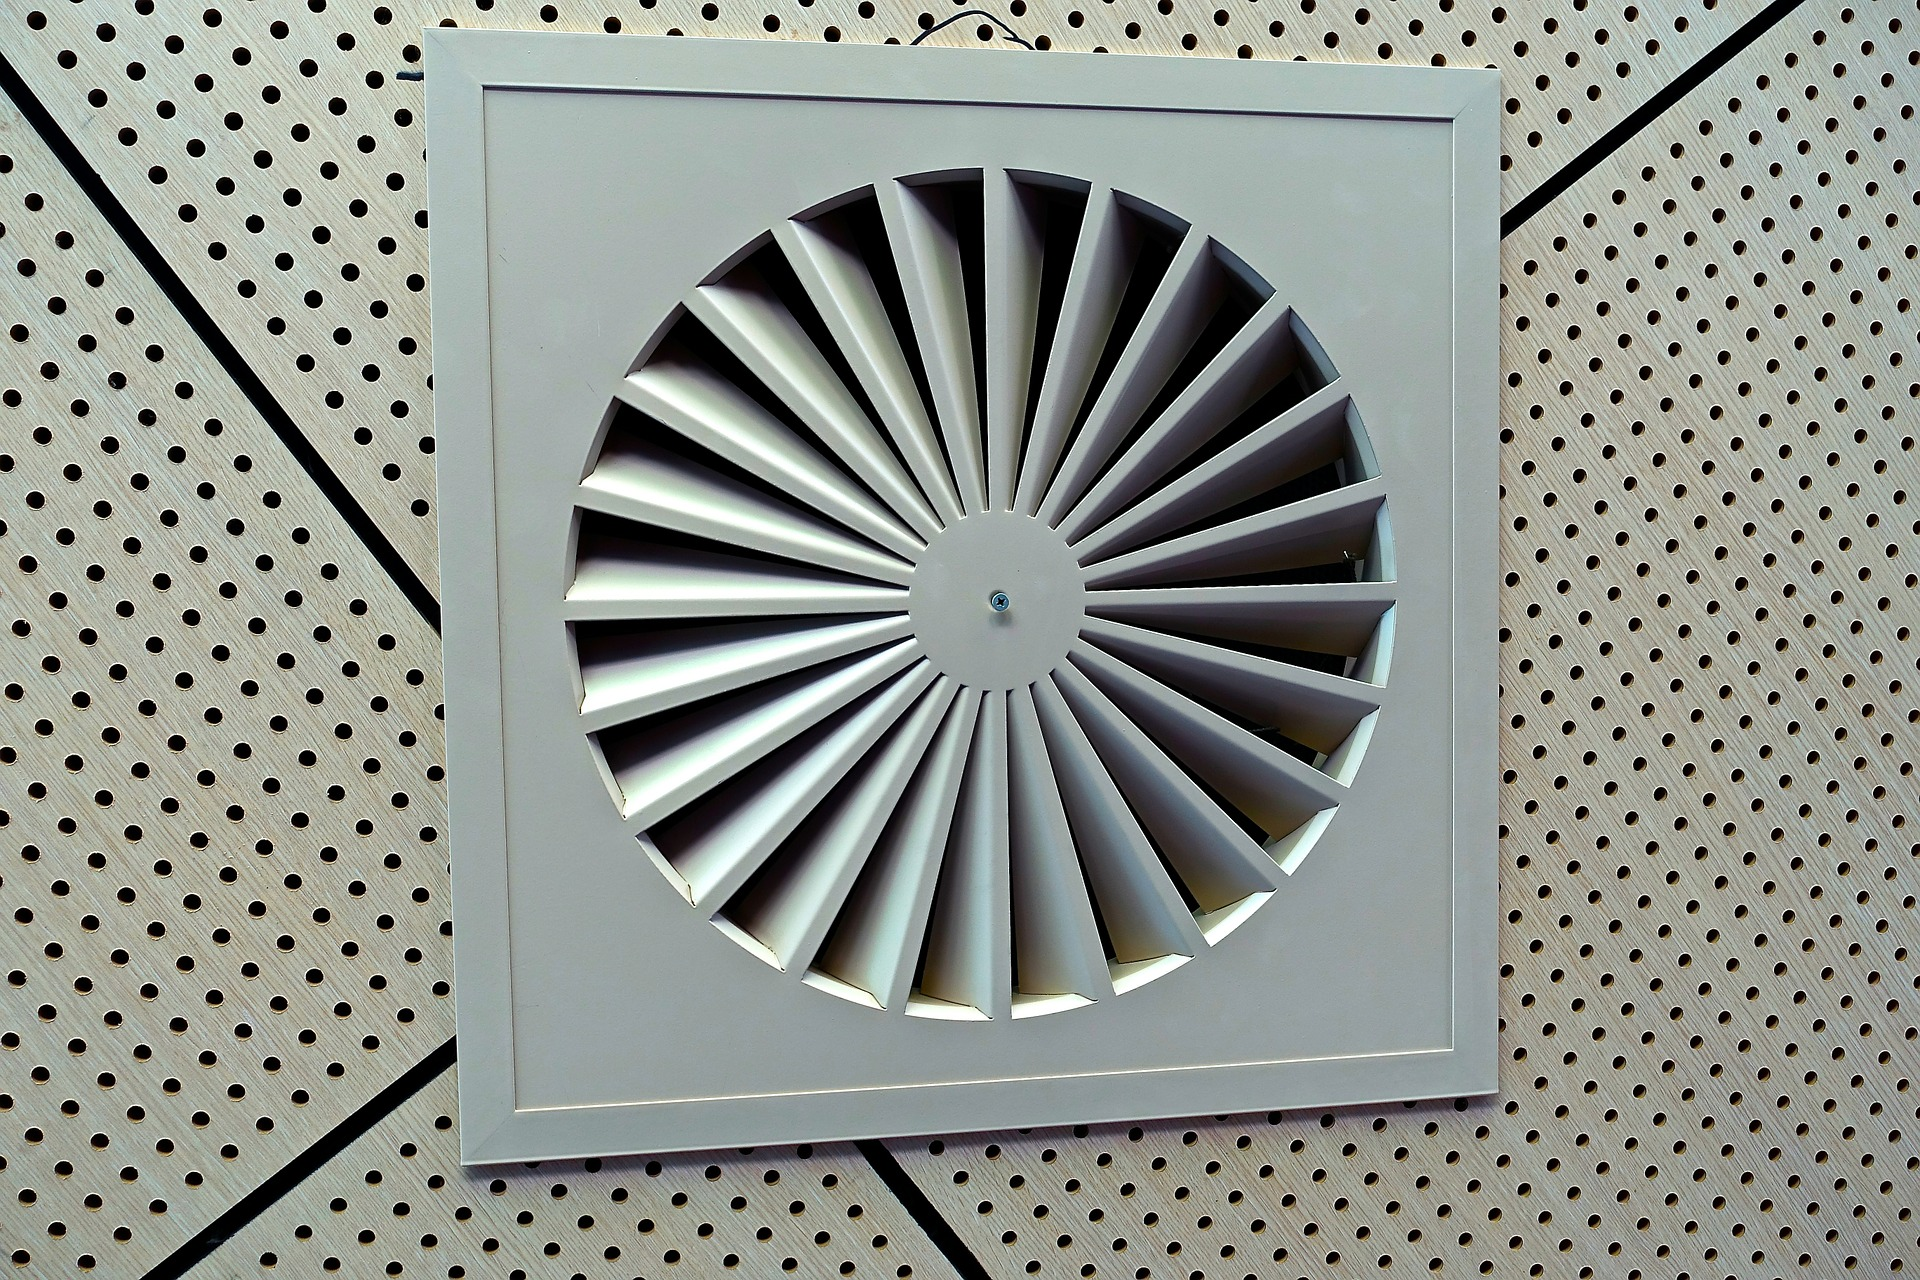 A picture of an exhaust fan